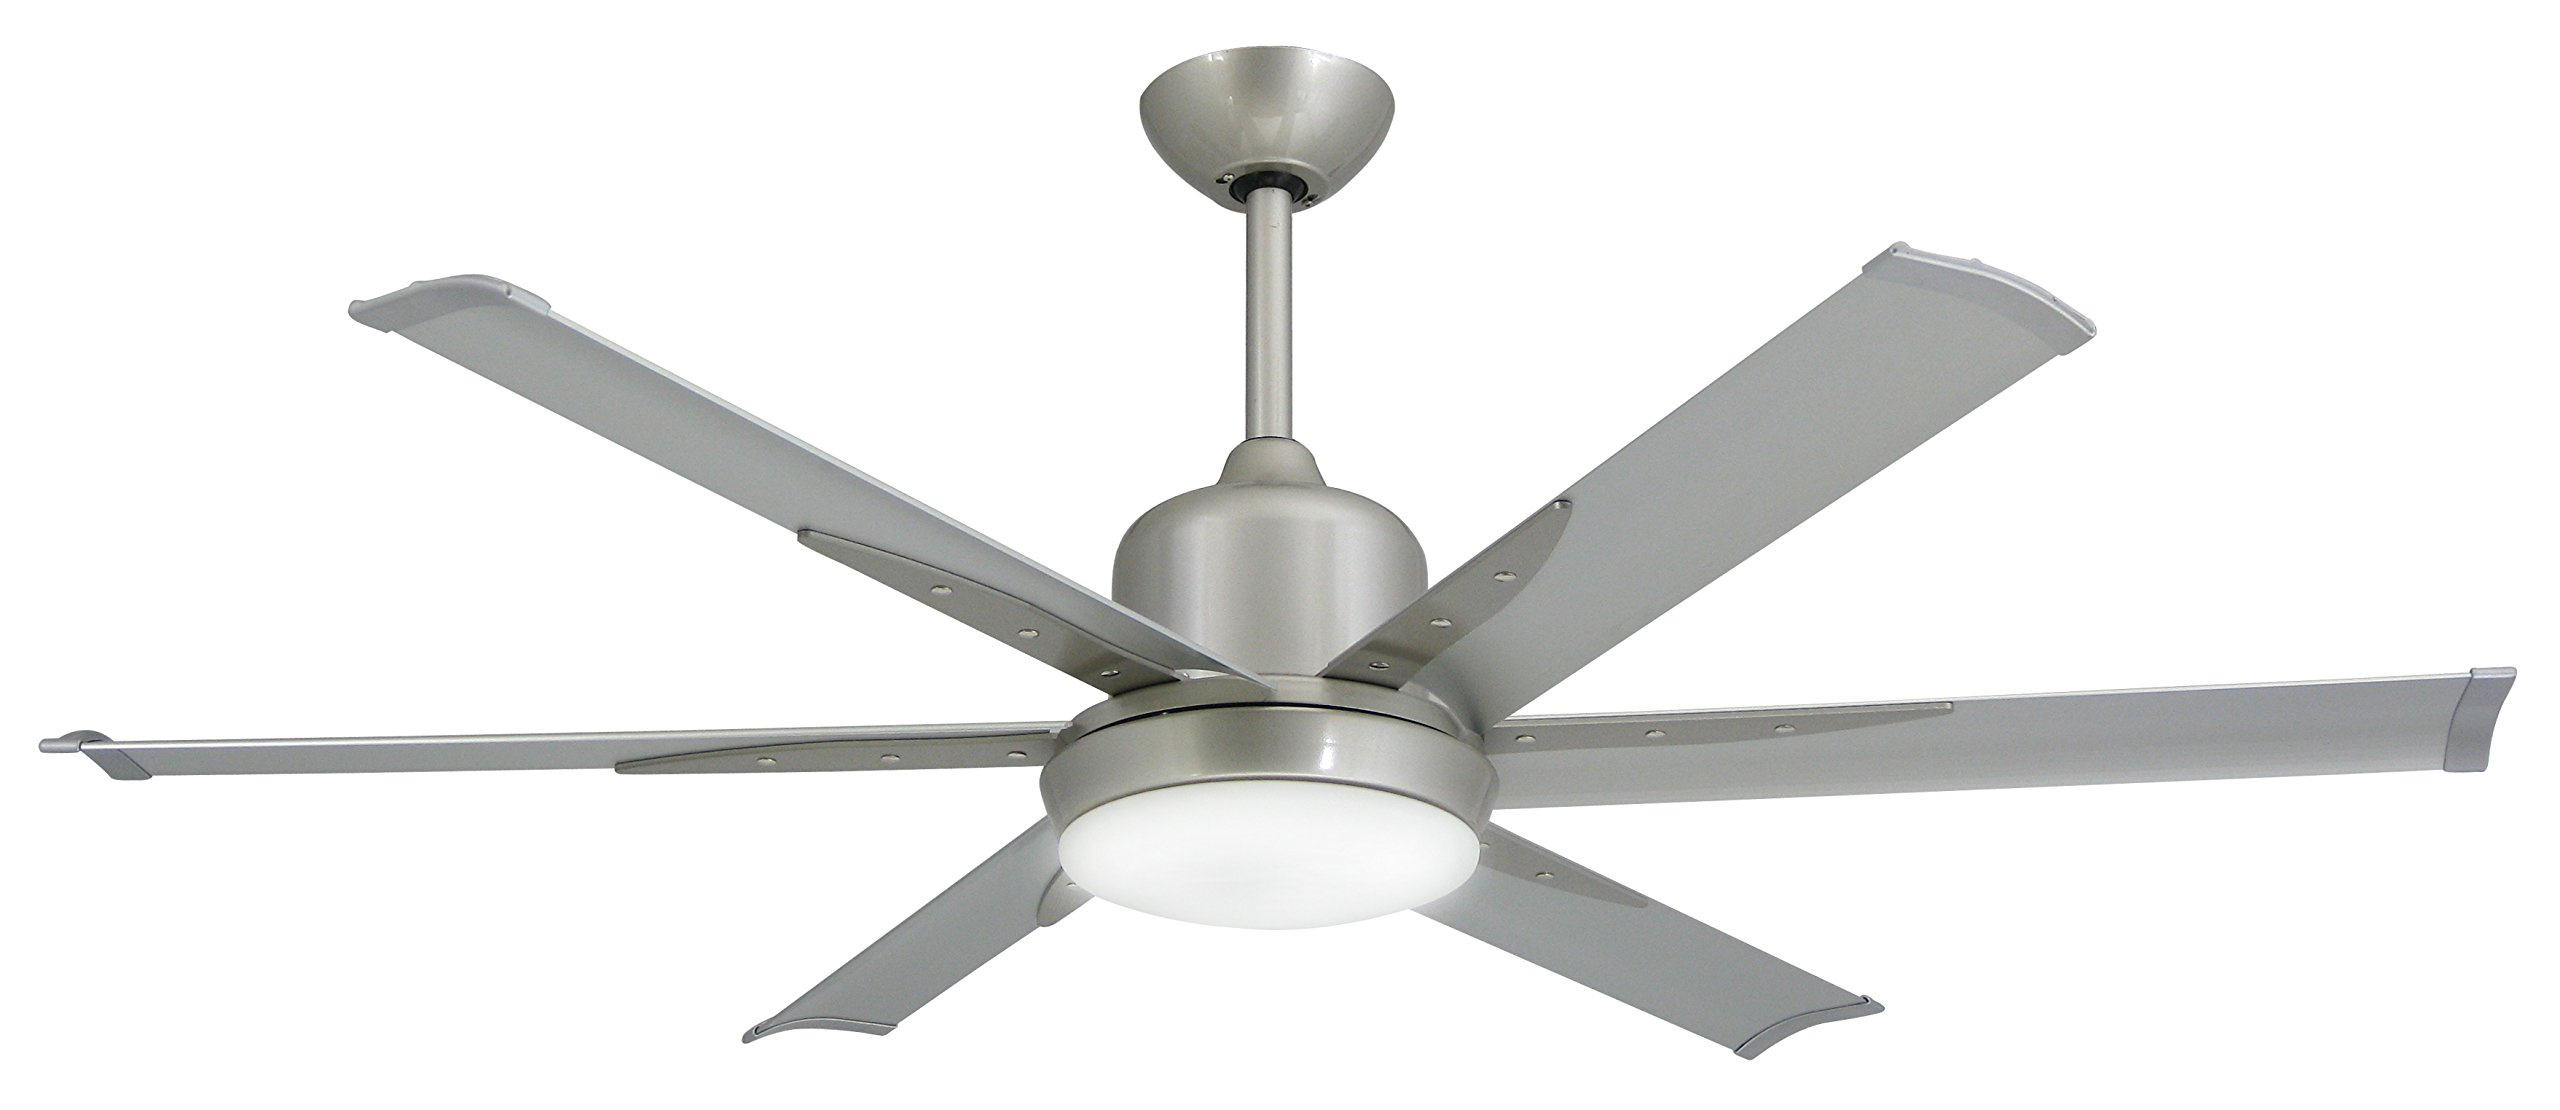 TroposAir DC-6 Brushed Nickel Industrial Ceiling Fan with 52'' Extruded Aluminum Blades, Integrated Light, DC-Motor and Remote